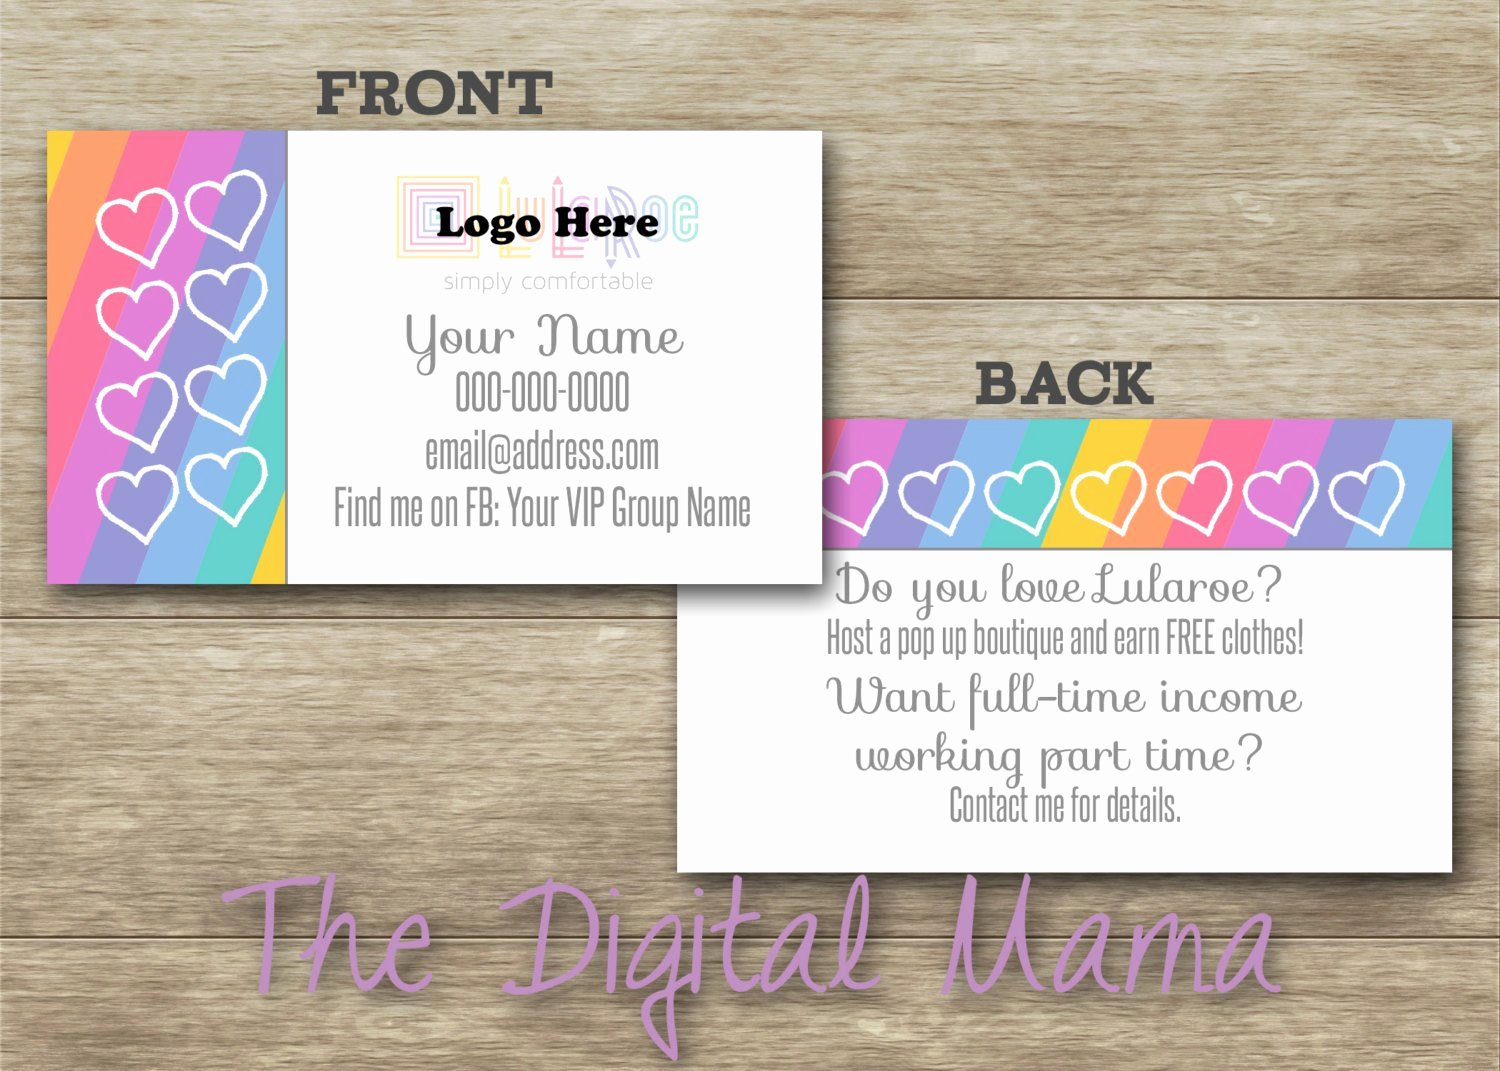 Lularoe Consultant Business Cards Design by thedigitalmama